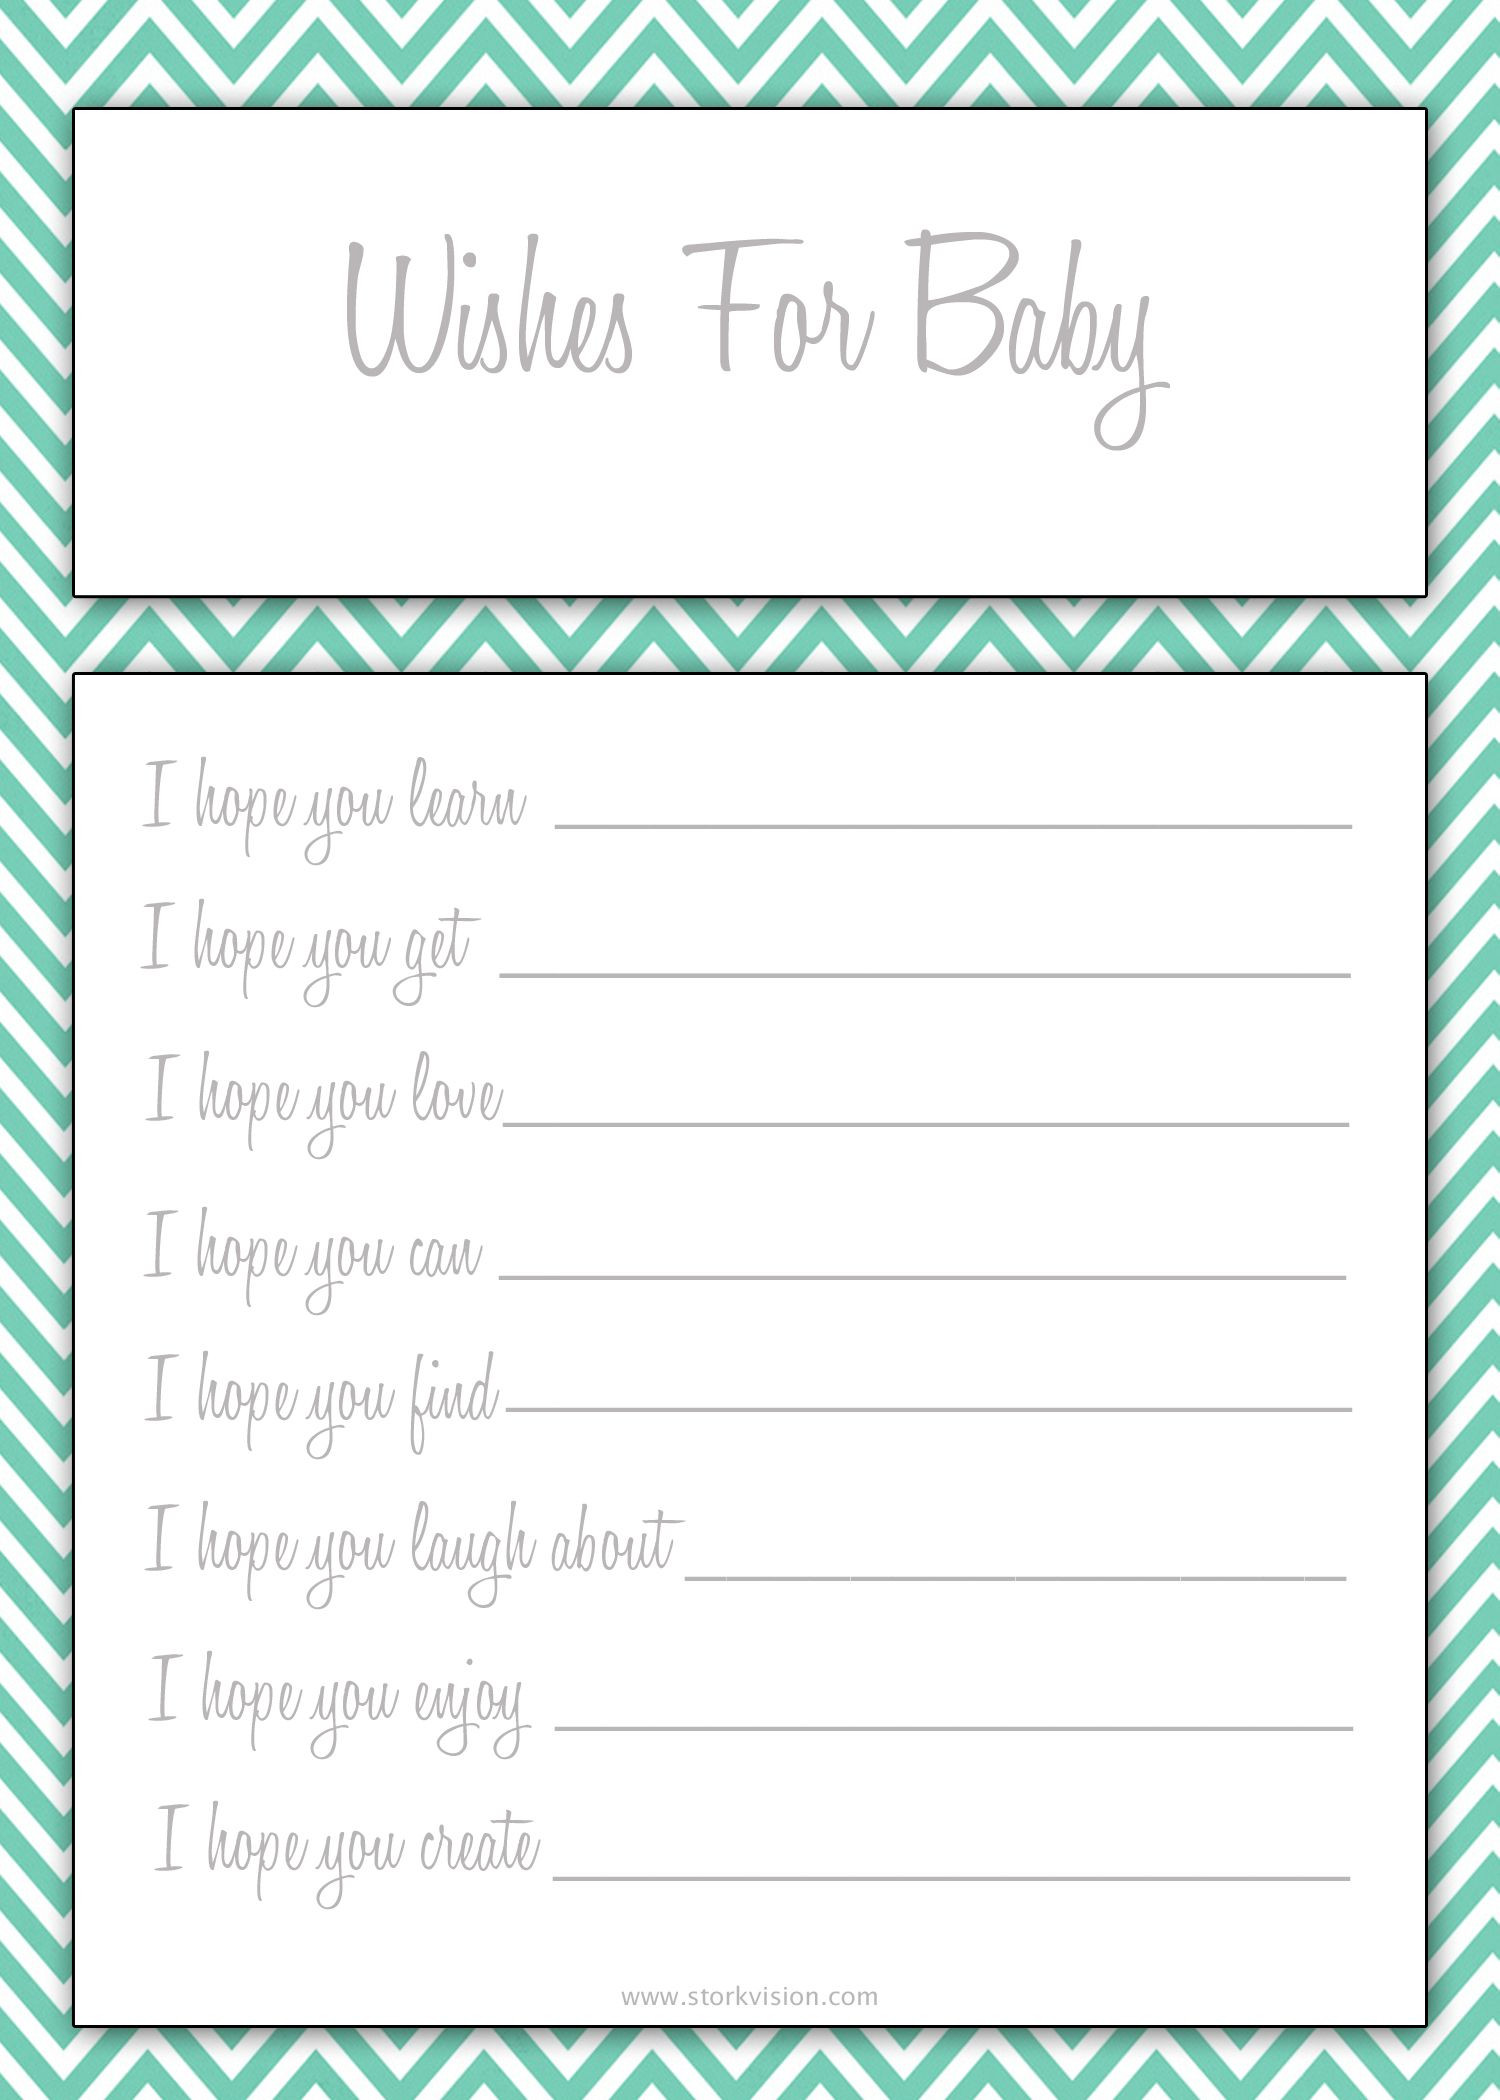 Wishes for Baby Printable in three colors